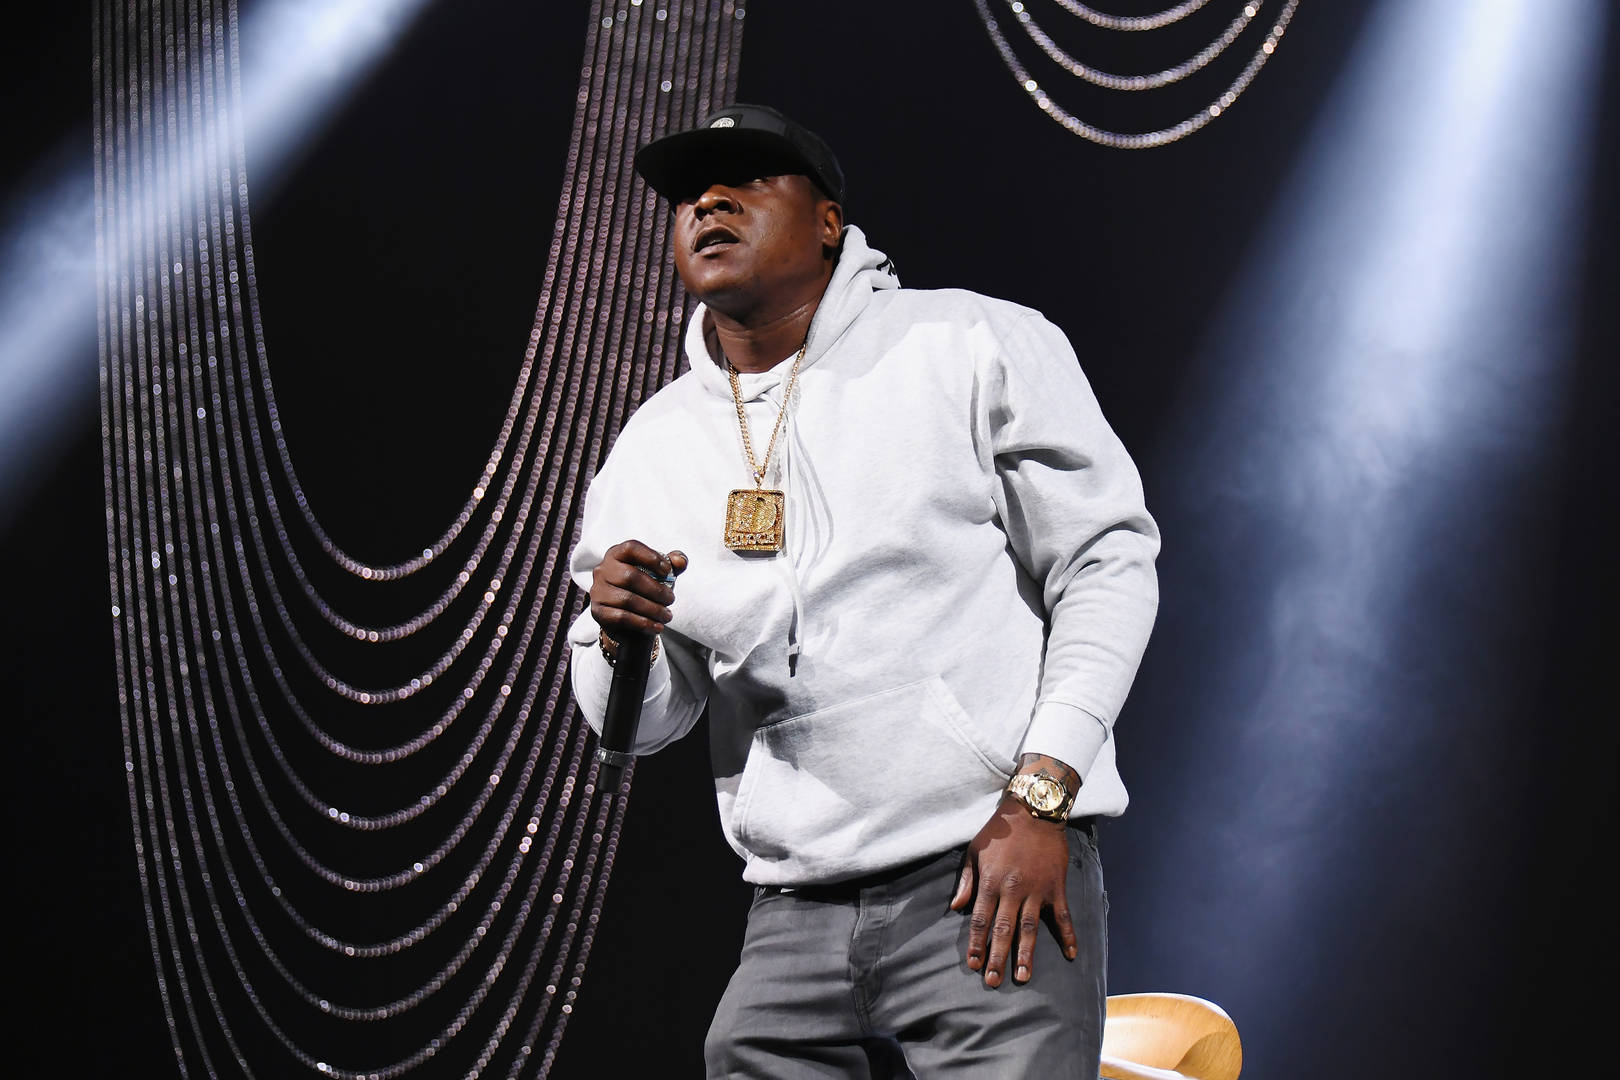 Jadakiss Reflects On Subs From Jay-Z & Why The 50 Cent Beef Was Beautiful